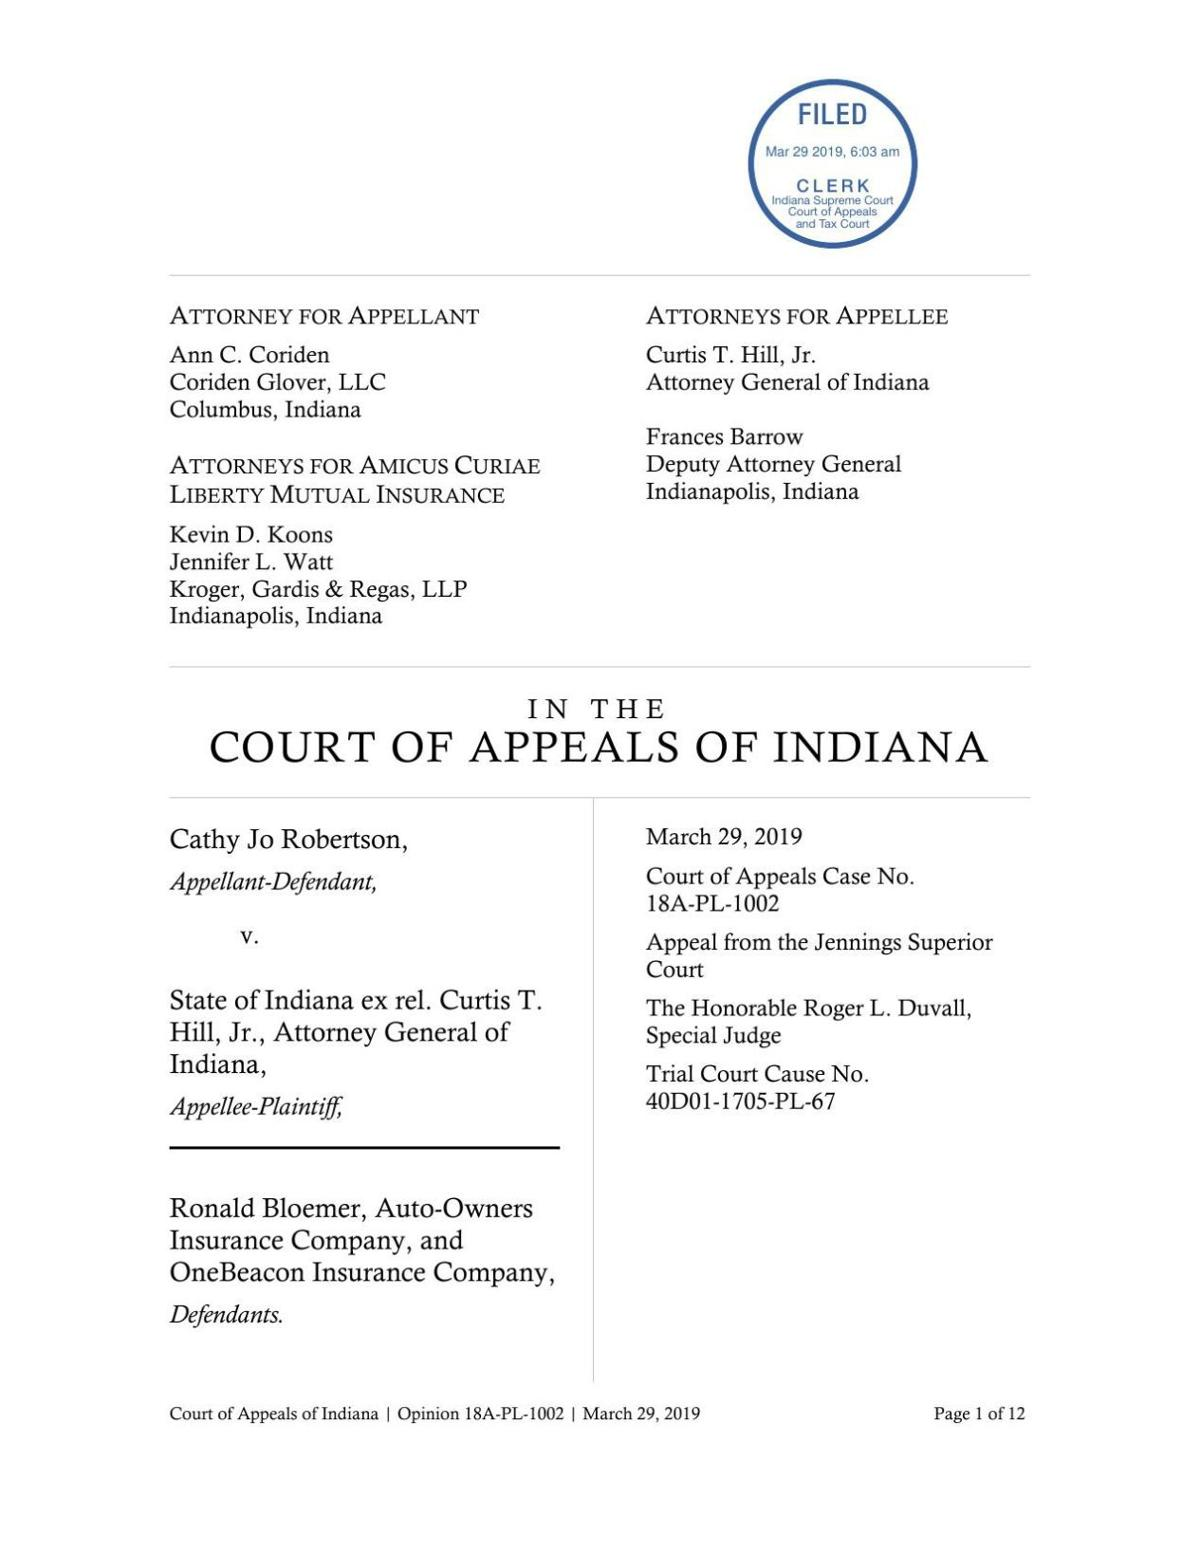 Robertson v. State ruling of Indiana Court of Appeals (Jennings County)